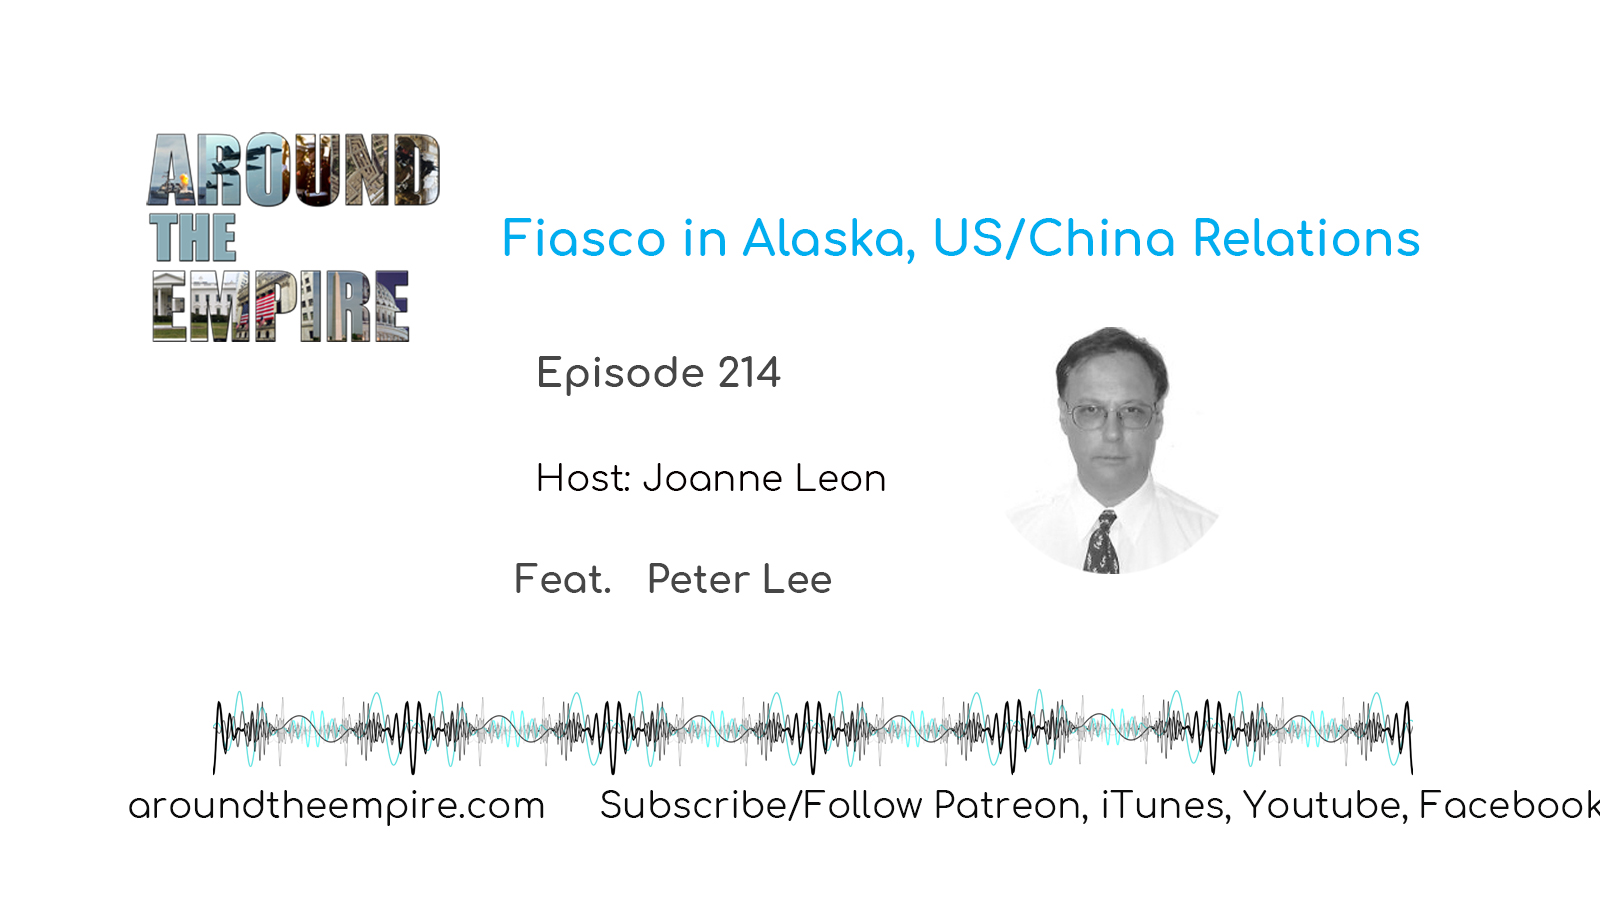 Ep 214 Fiasco in Alaska, US/China Relations feat Peter Lee